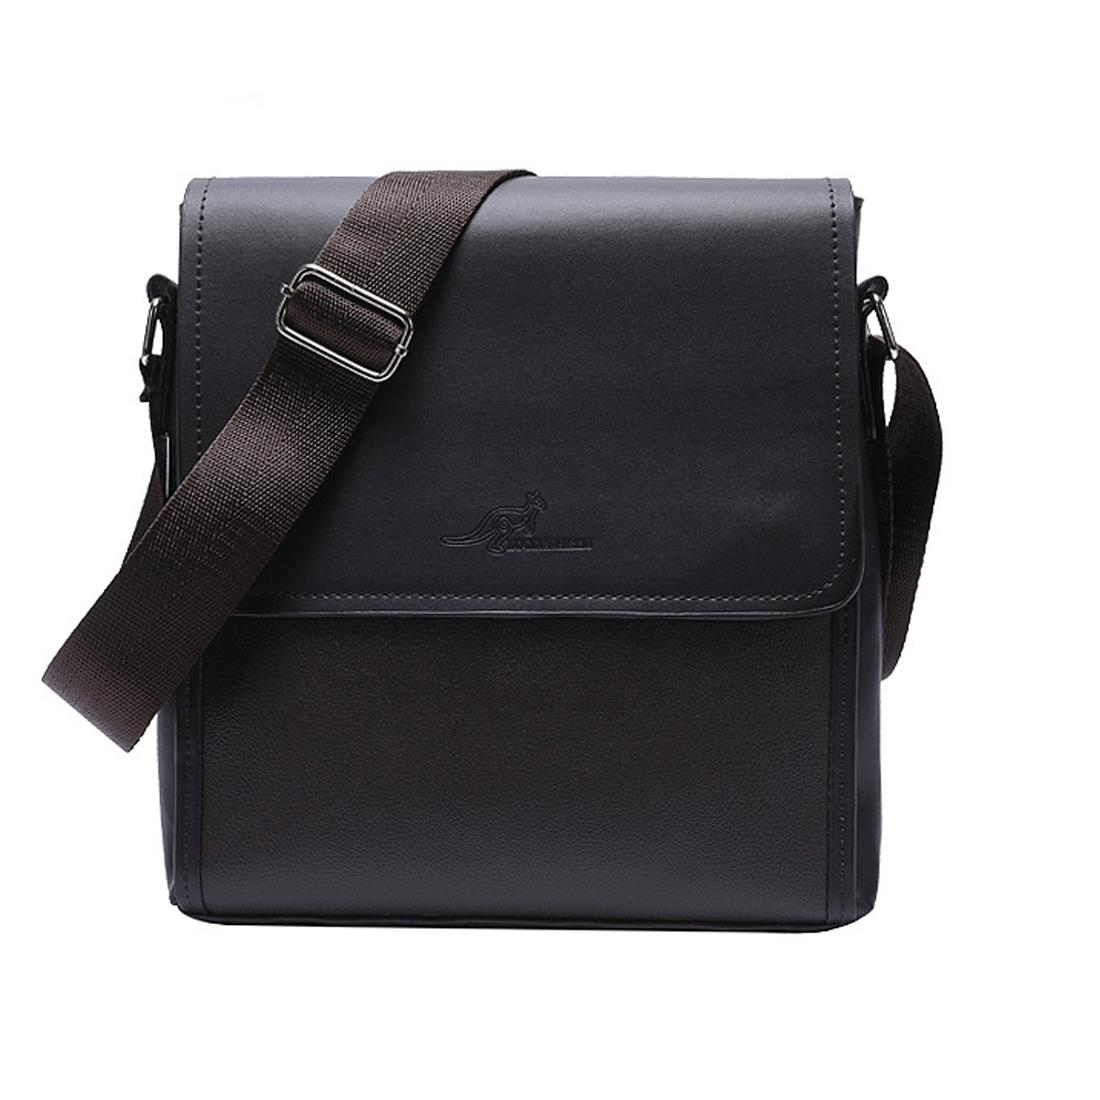 Messenger Bags for sale - Messenger Bags for Men online brands ... 78125d3f23